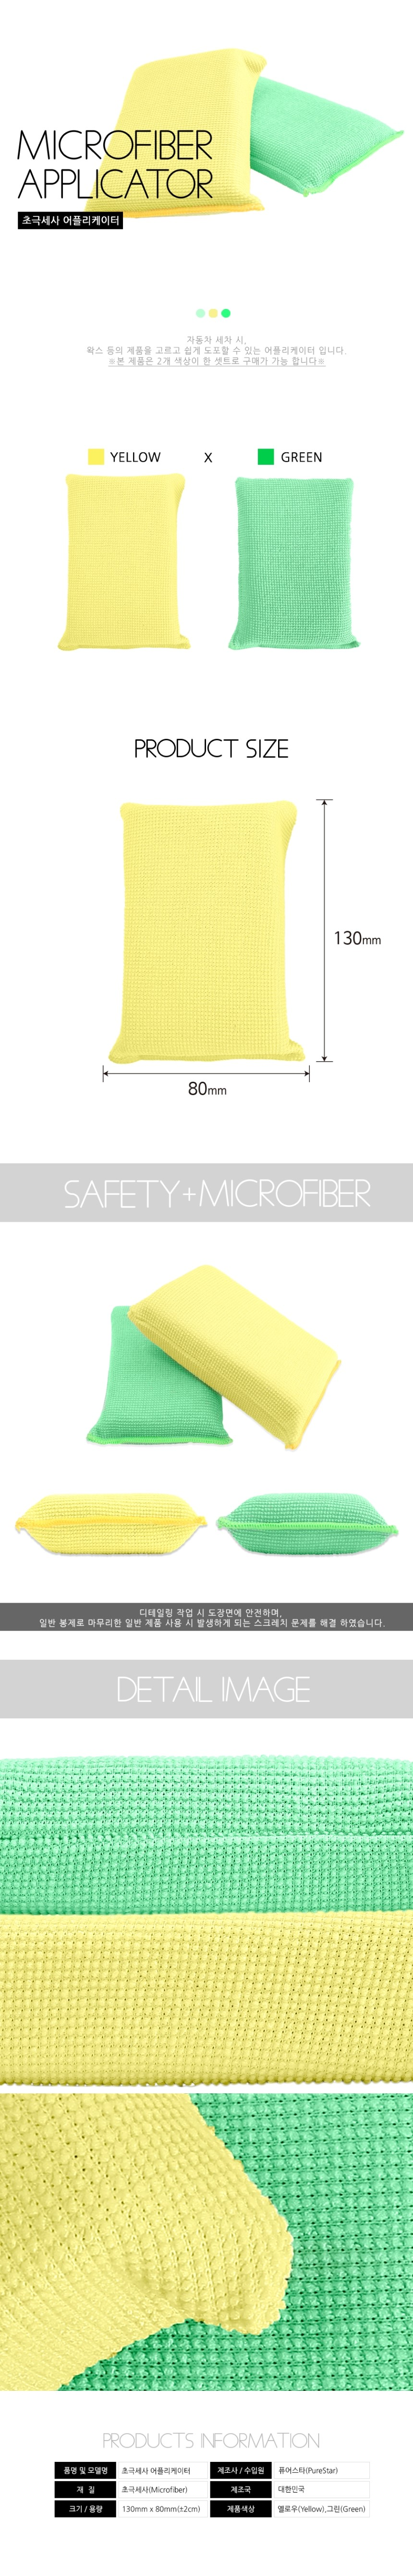 Purestar_applicator_ultra_fine_microfiber_applicator_yellow_and_green_160729.jpg